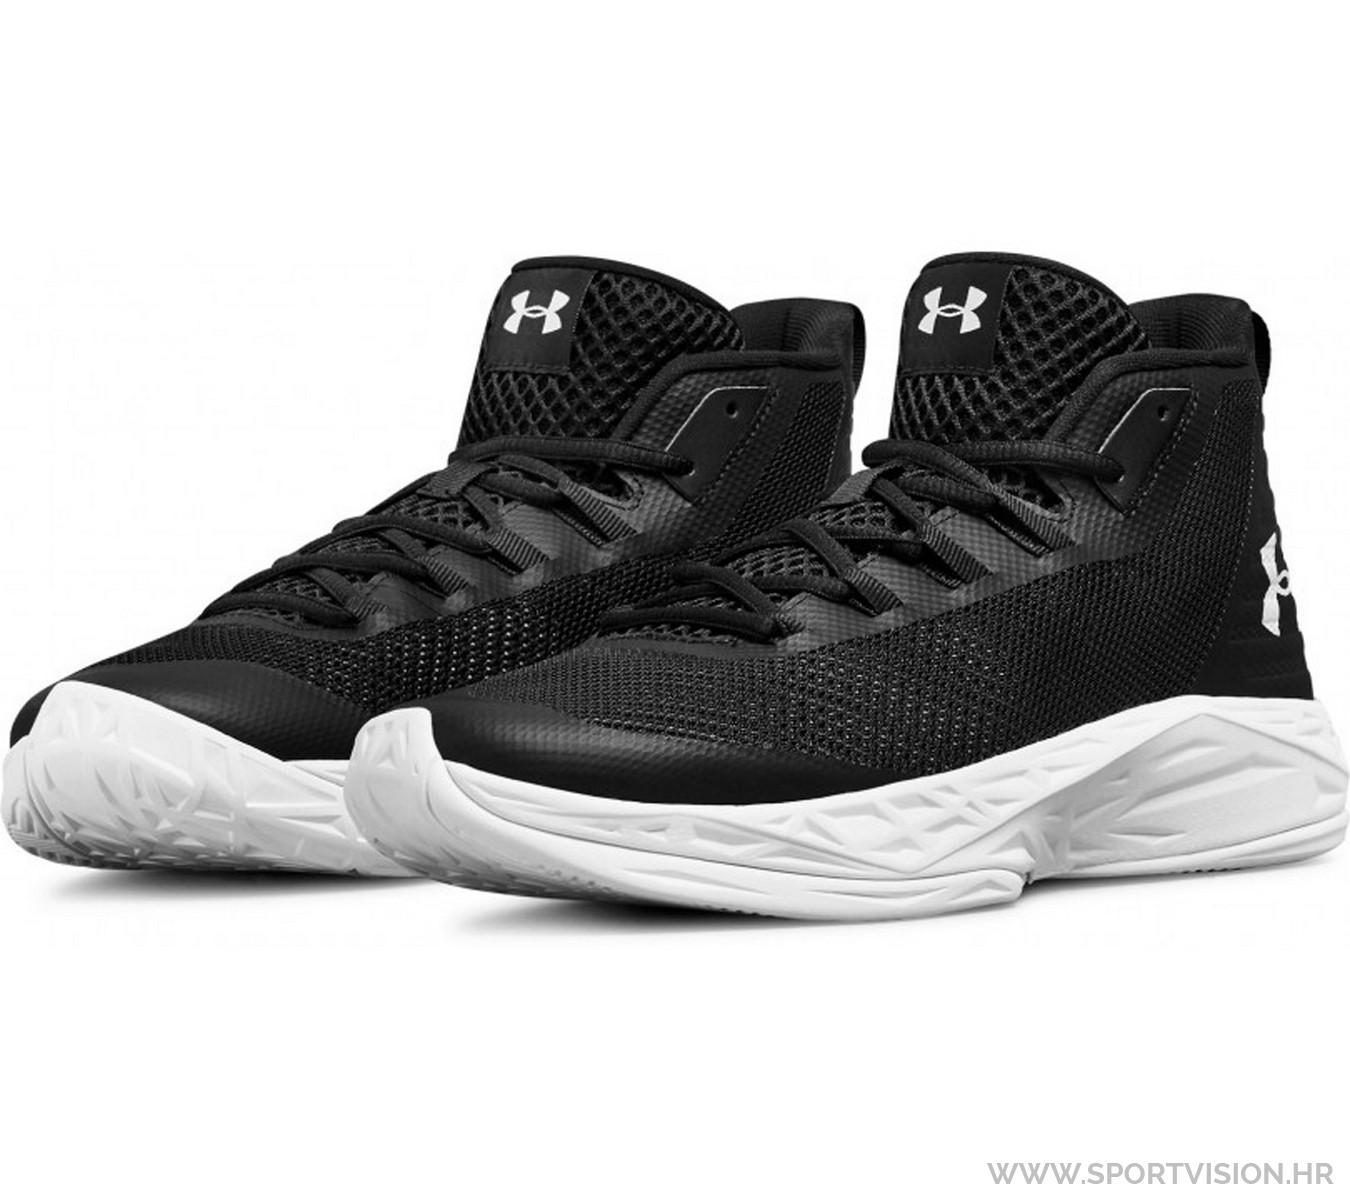 UNDER ARMOUR tenisice JET MID